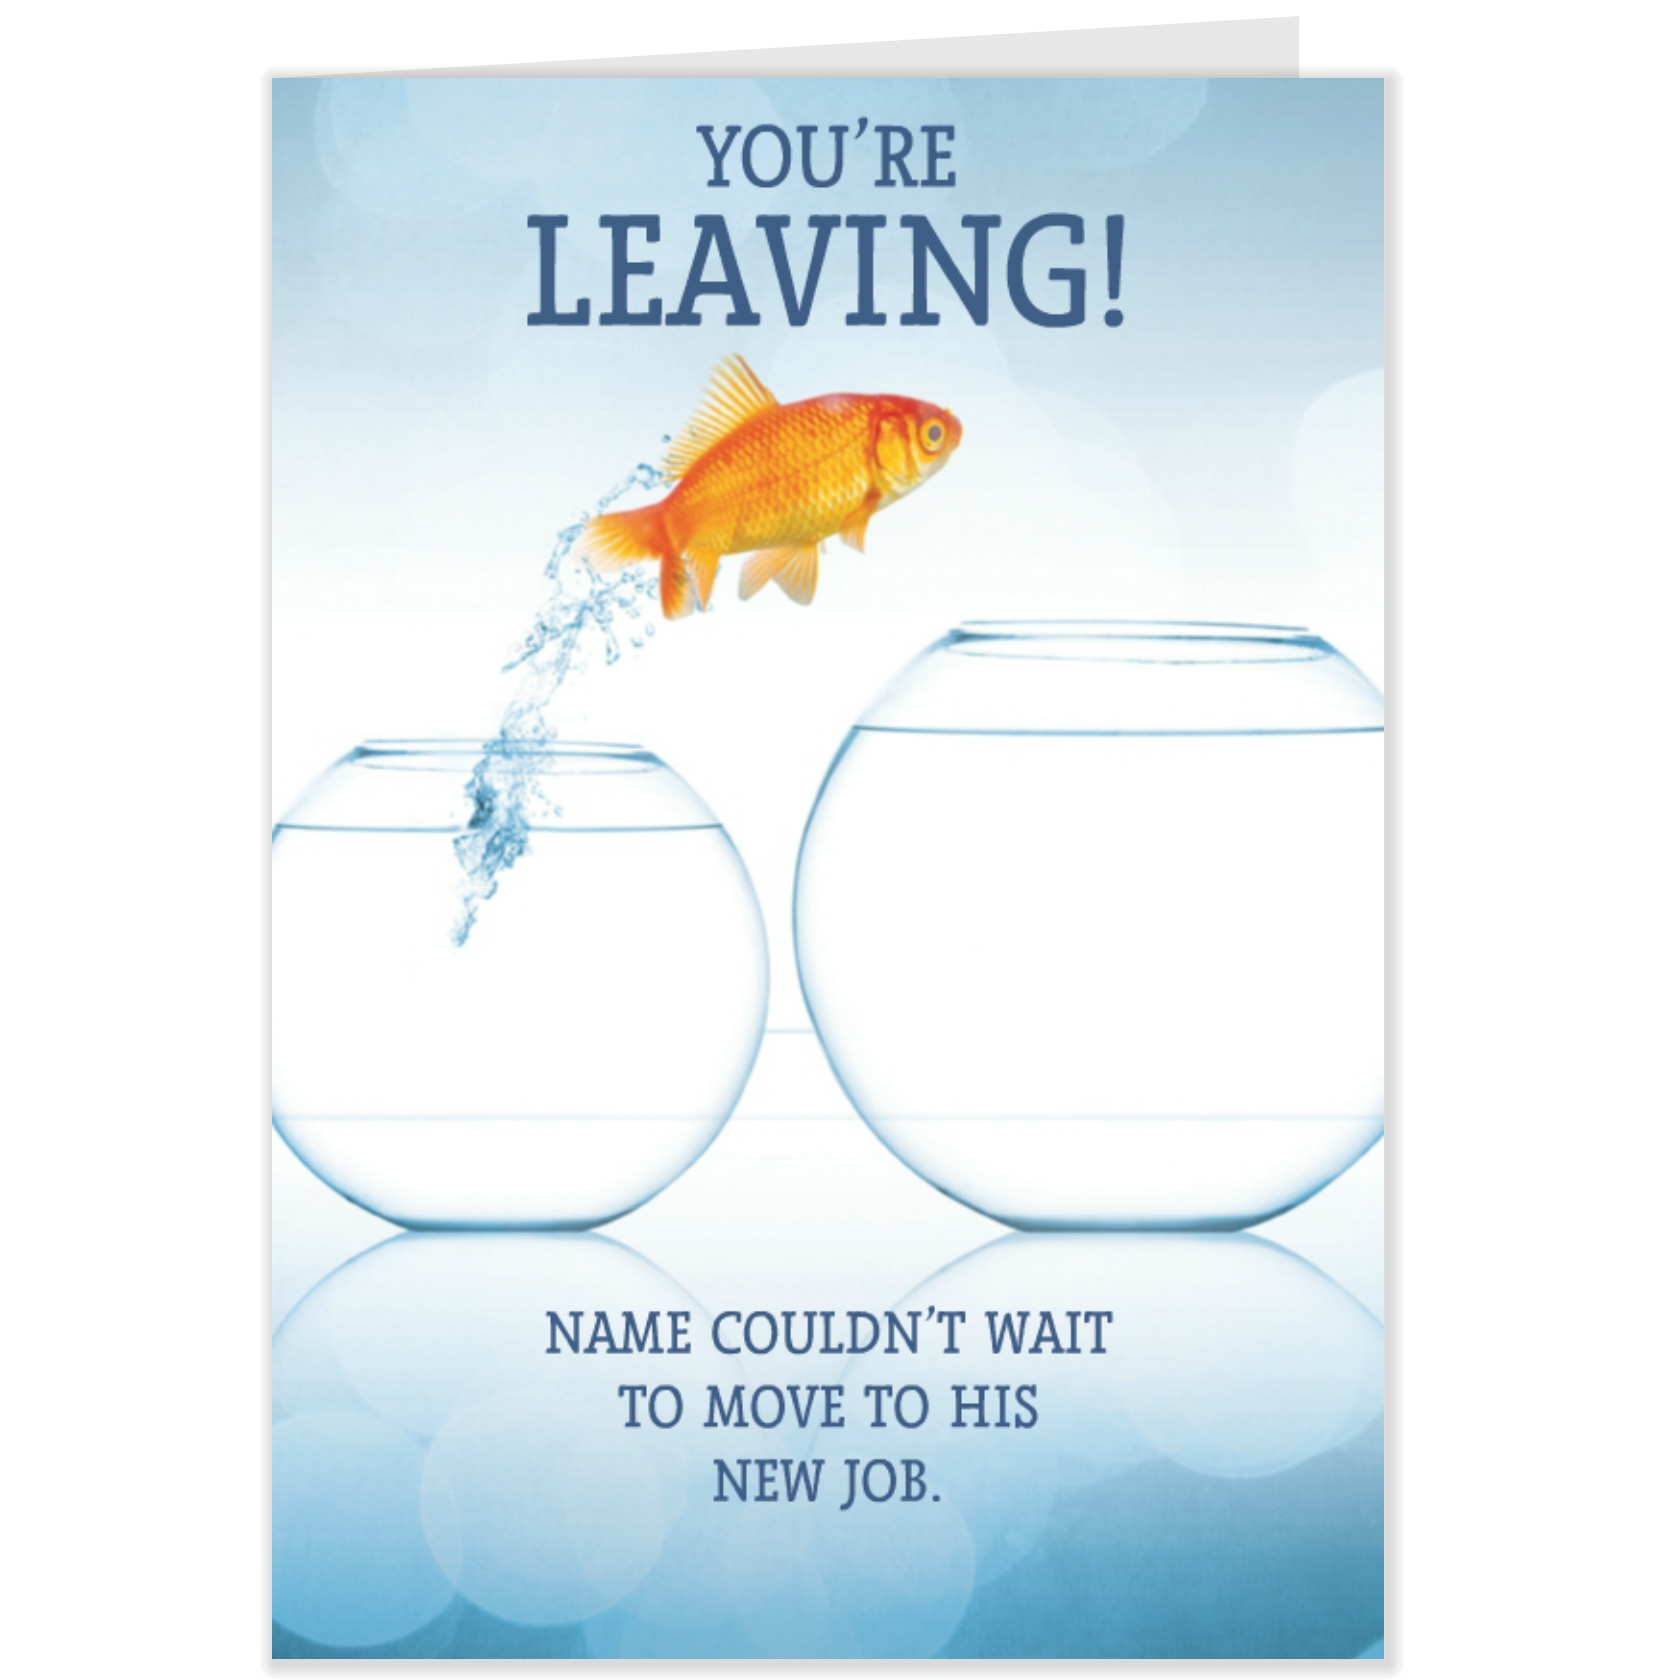 Good Luck Sayings For A New Job | www.galleryhip.com - The Hippest ...